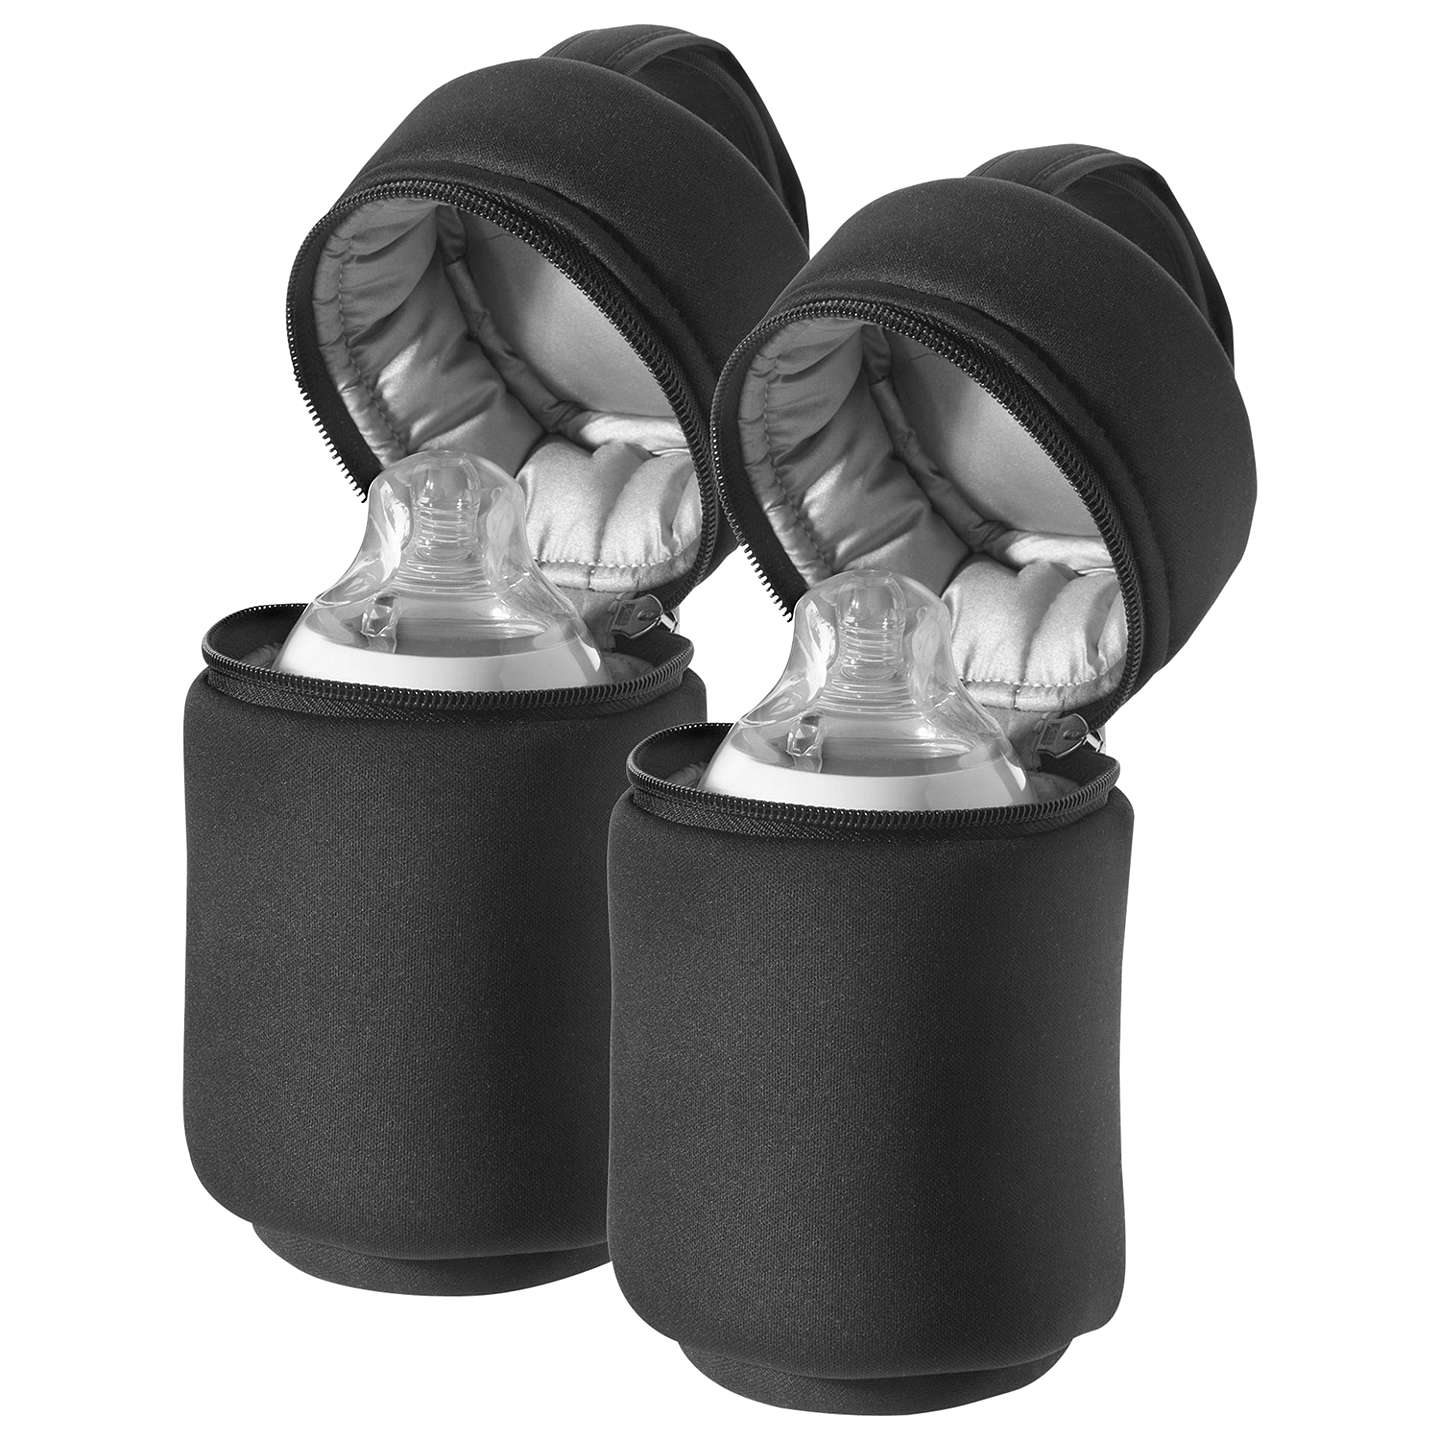 Tommee Tippee Closer To Nature Insulated Bottle Bags Pack